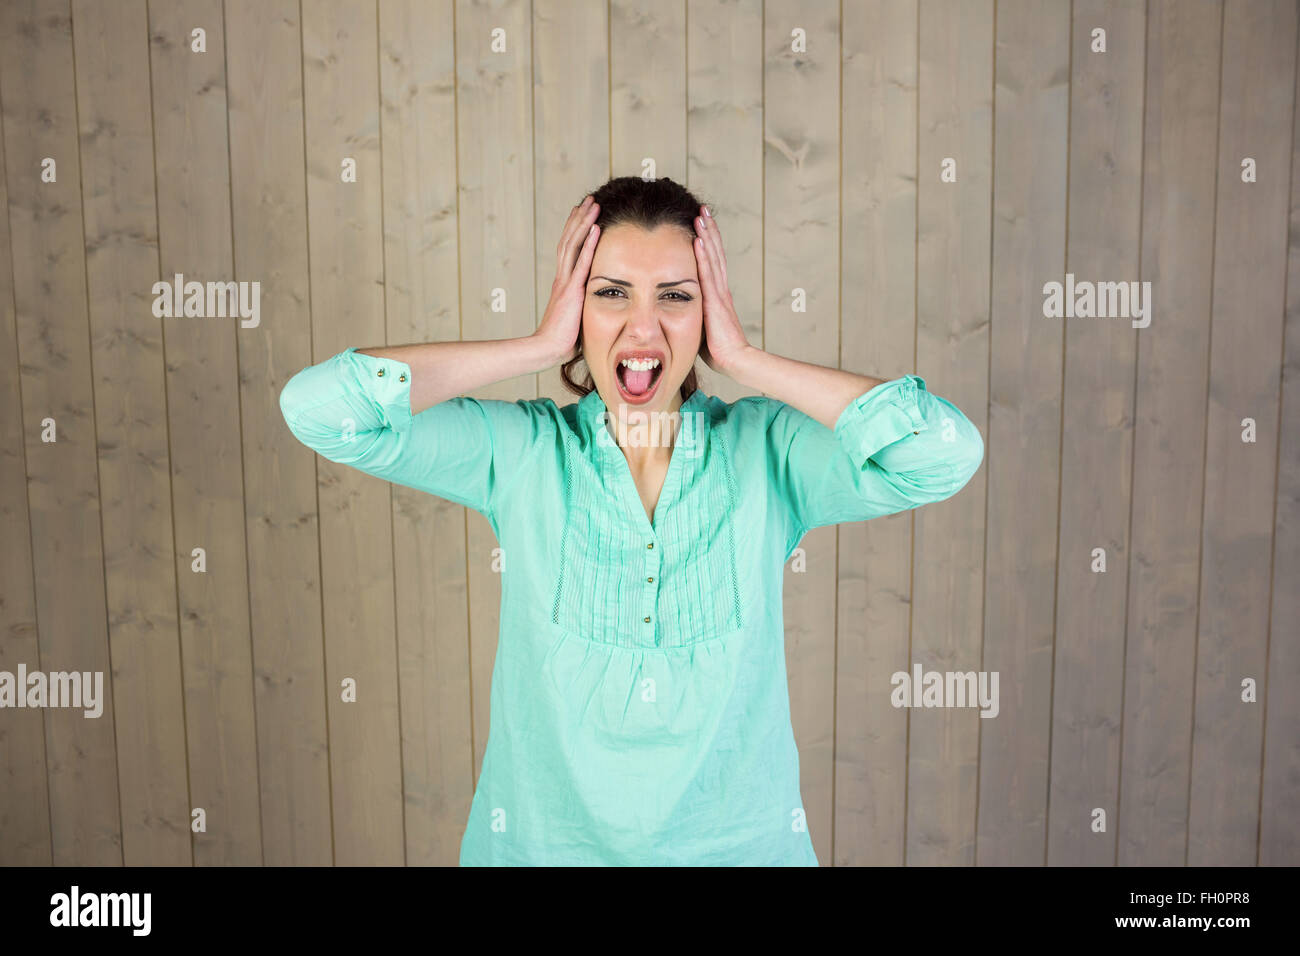 Portrait of woman screaming with head in hands - Stock Image